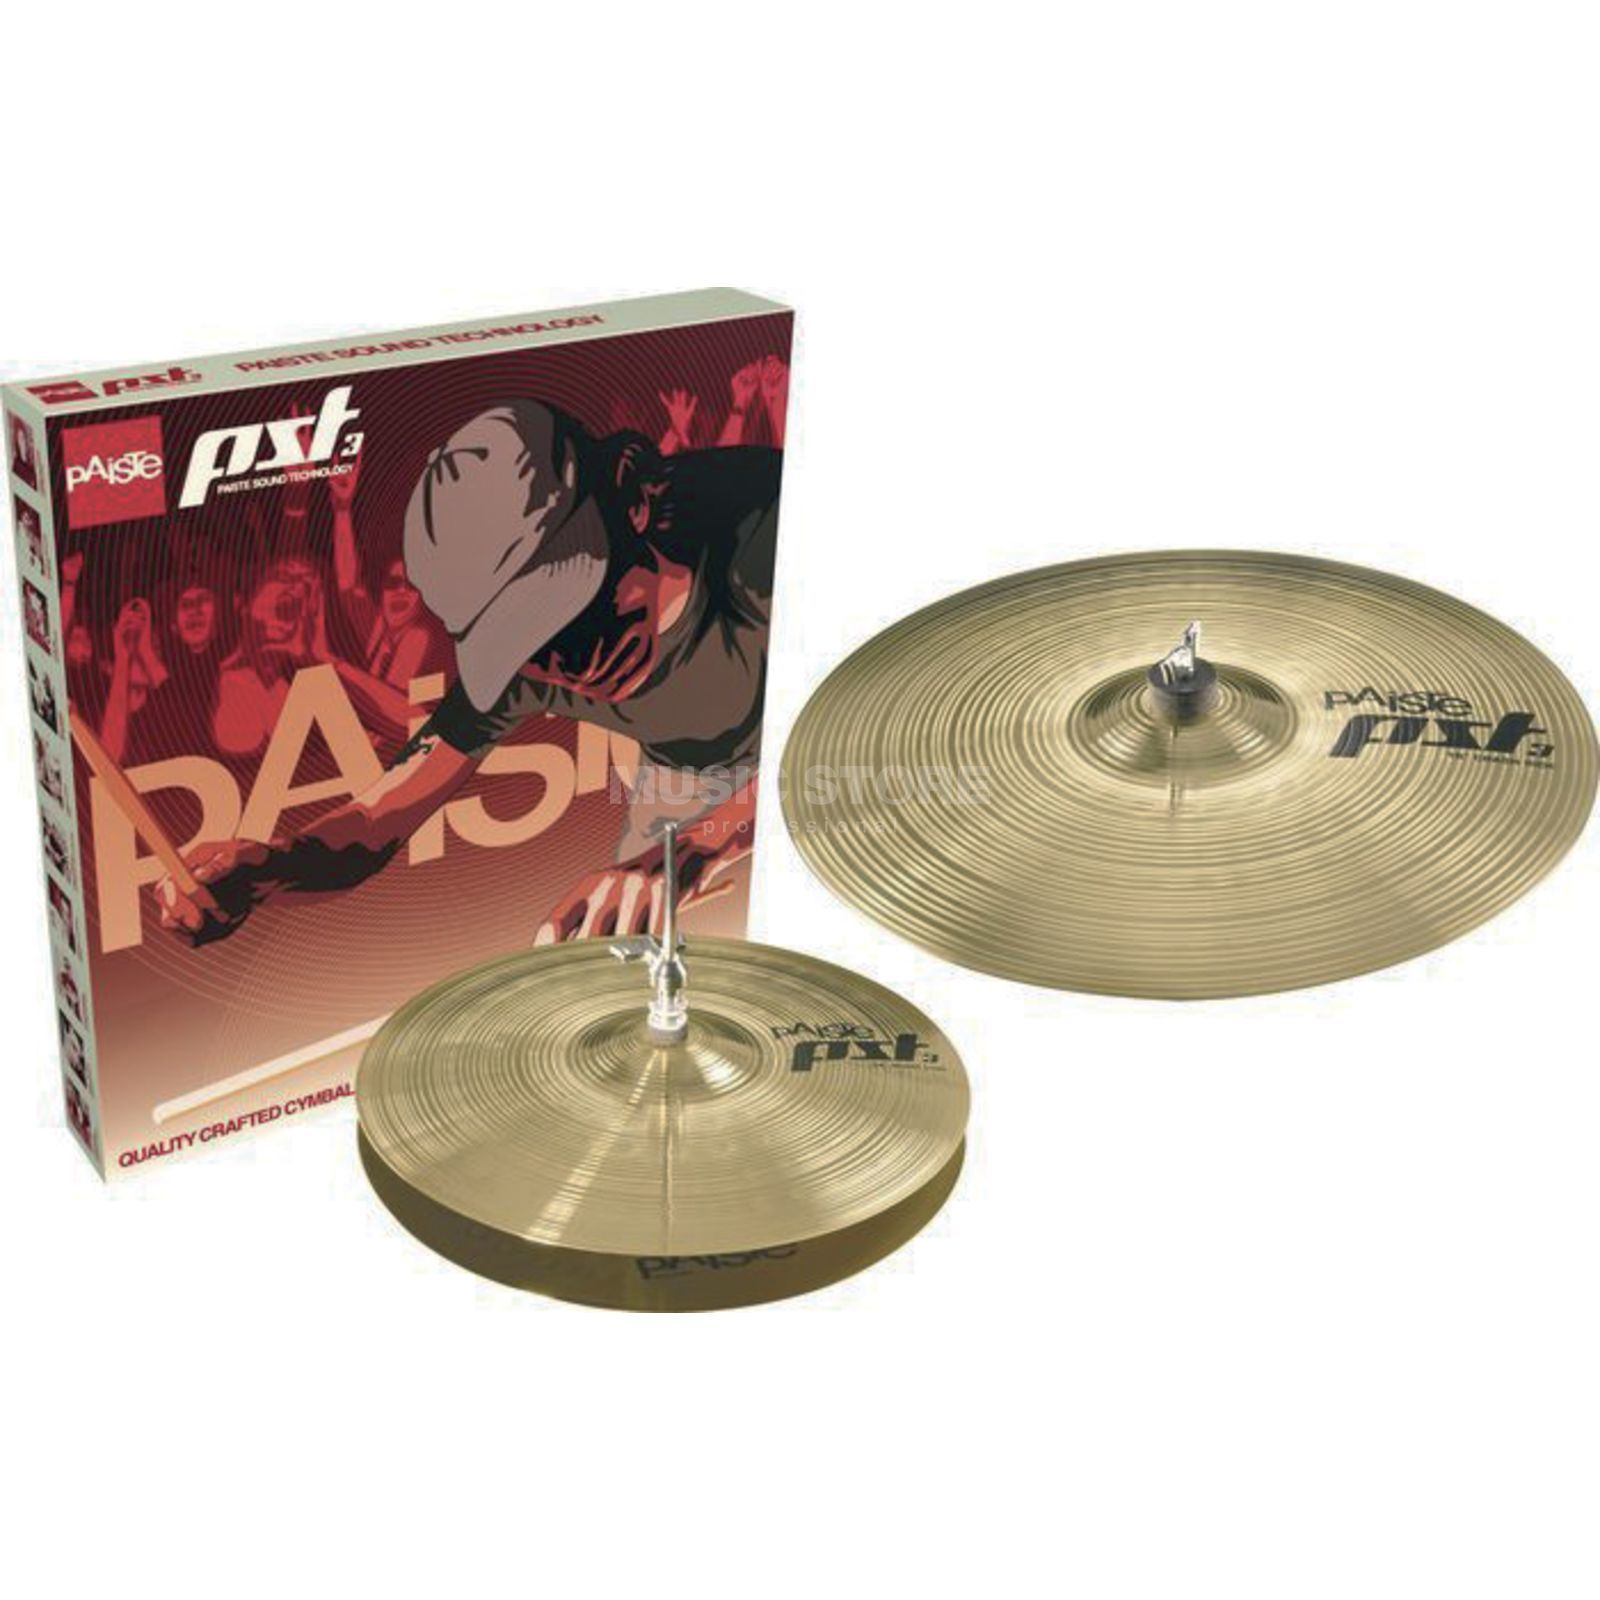 "Paiste PST3 Cymbal Set ""Essential"" 14"" HiHat, 18"" Crash Ride Produktbild"